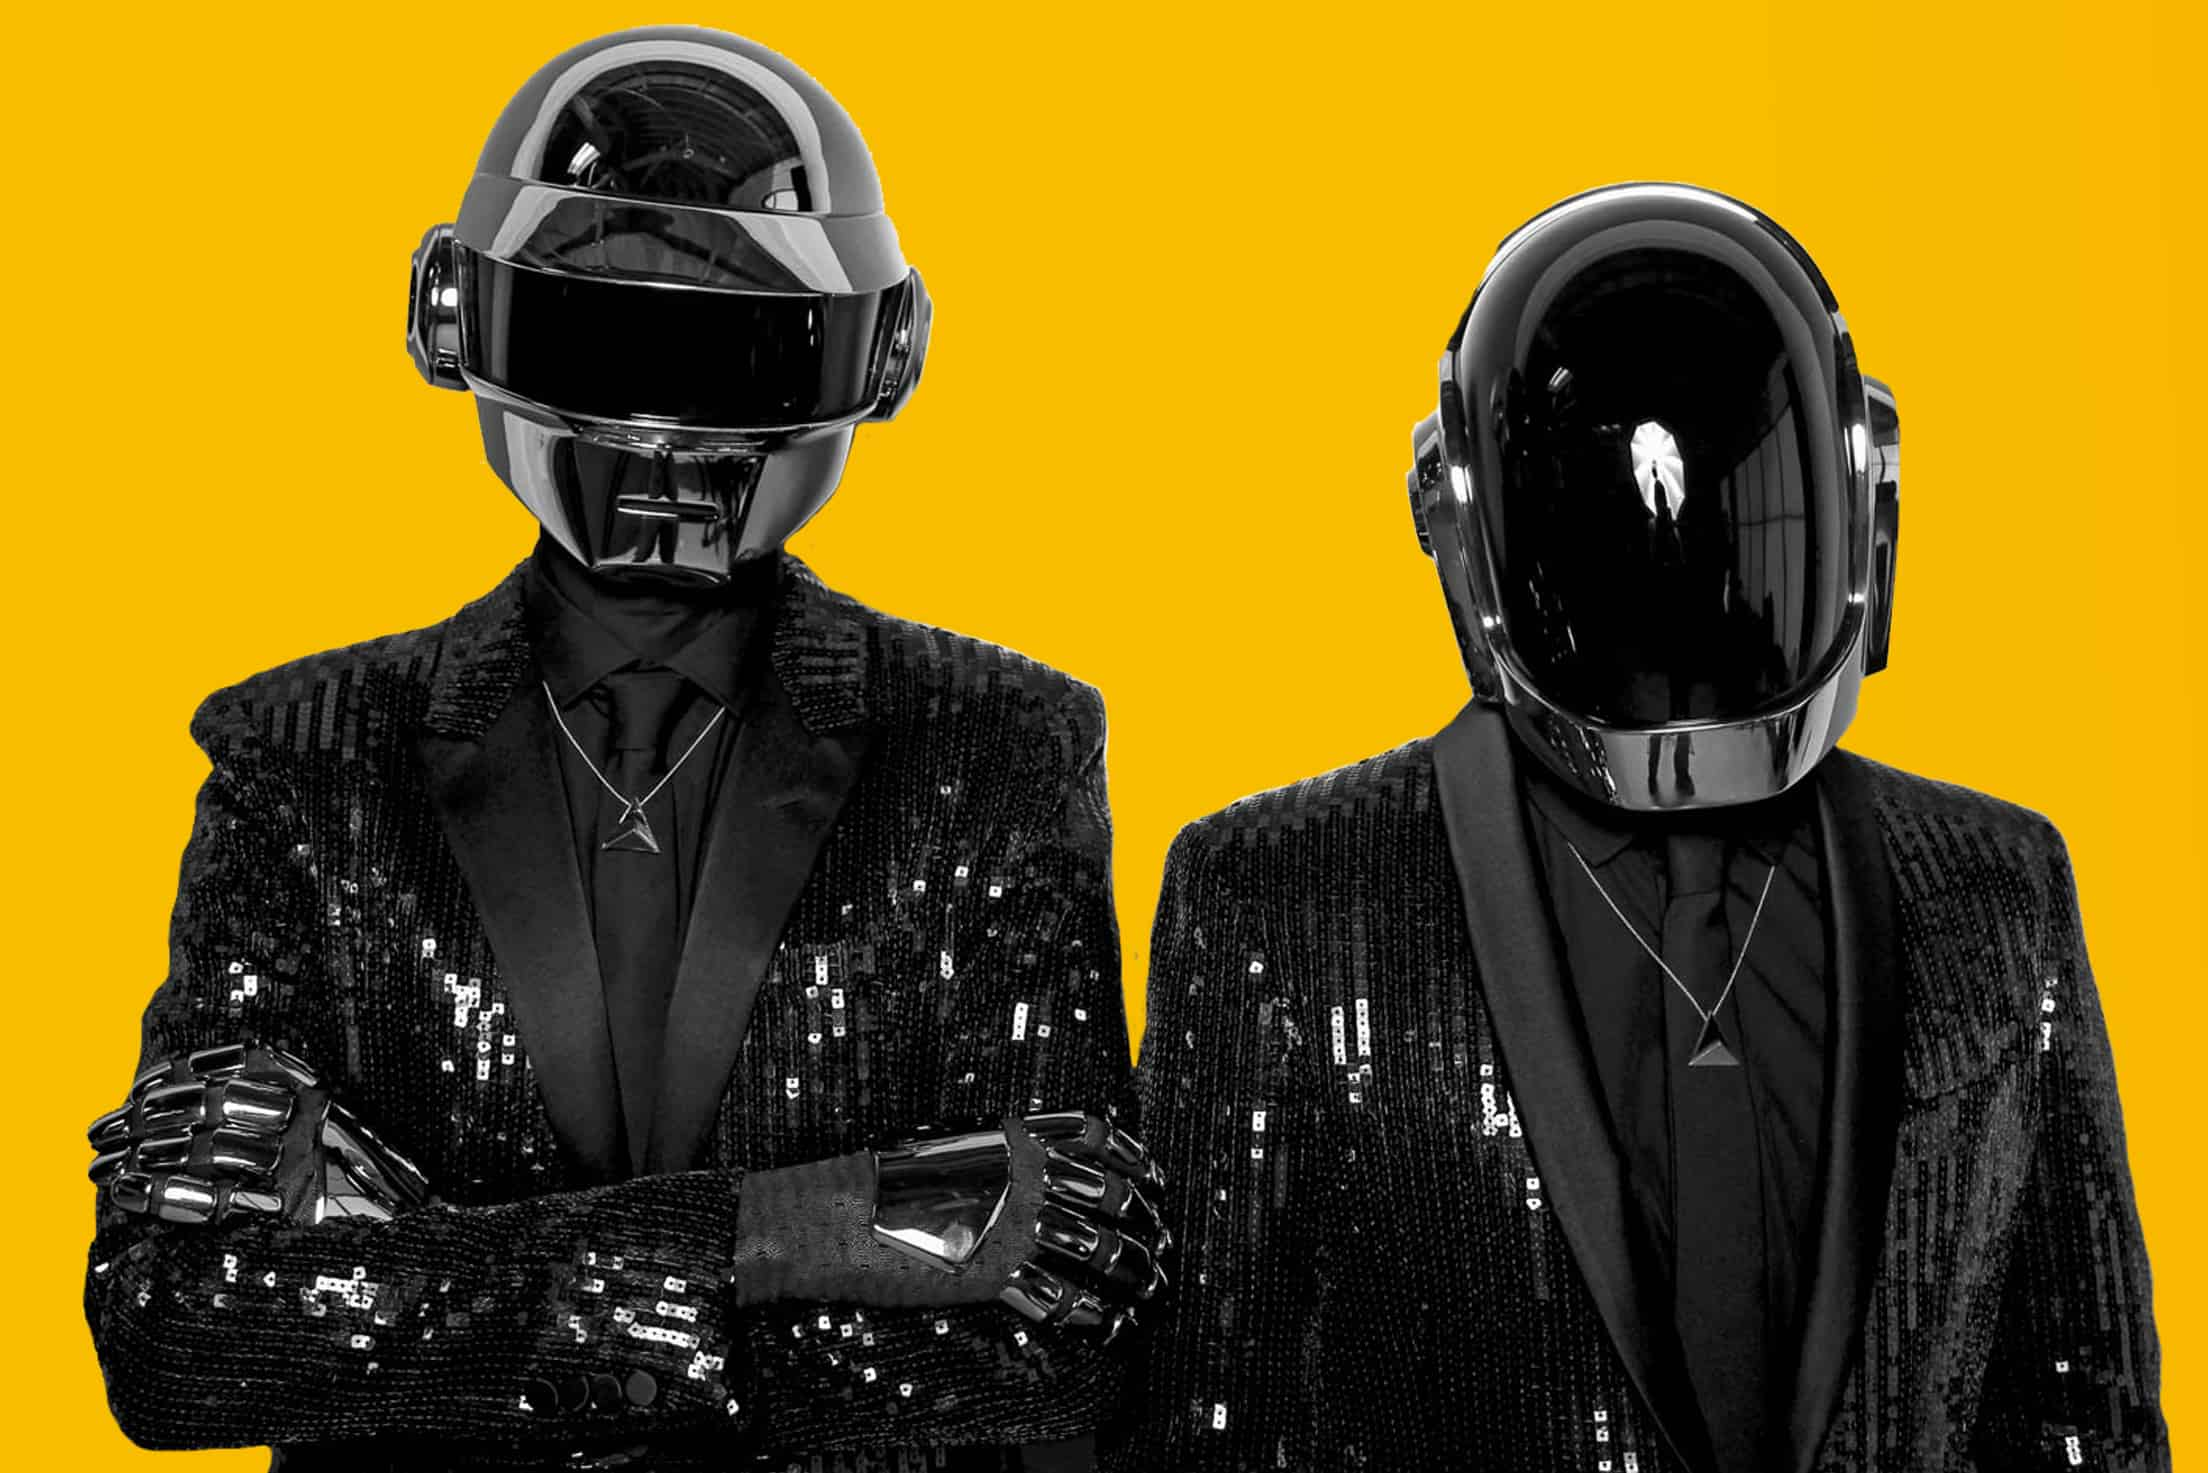 DISNEY WANTS DAFT PUNK TO SOUNDTRACK PLANNED TRON SEQUEL